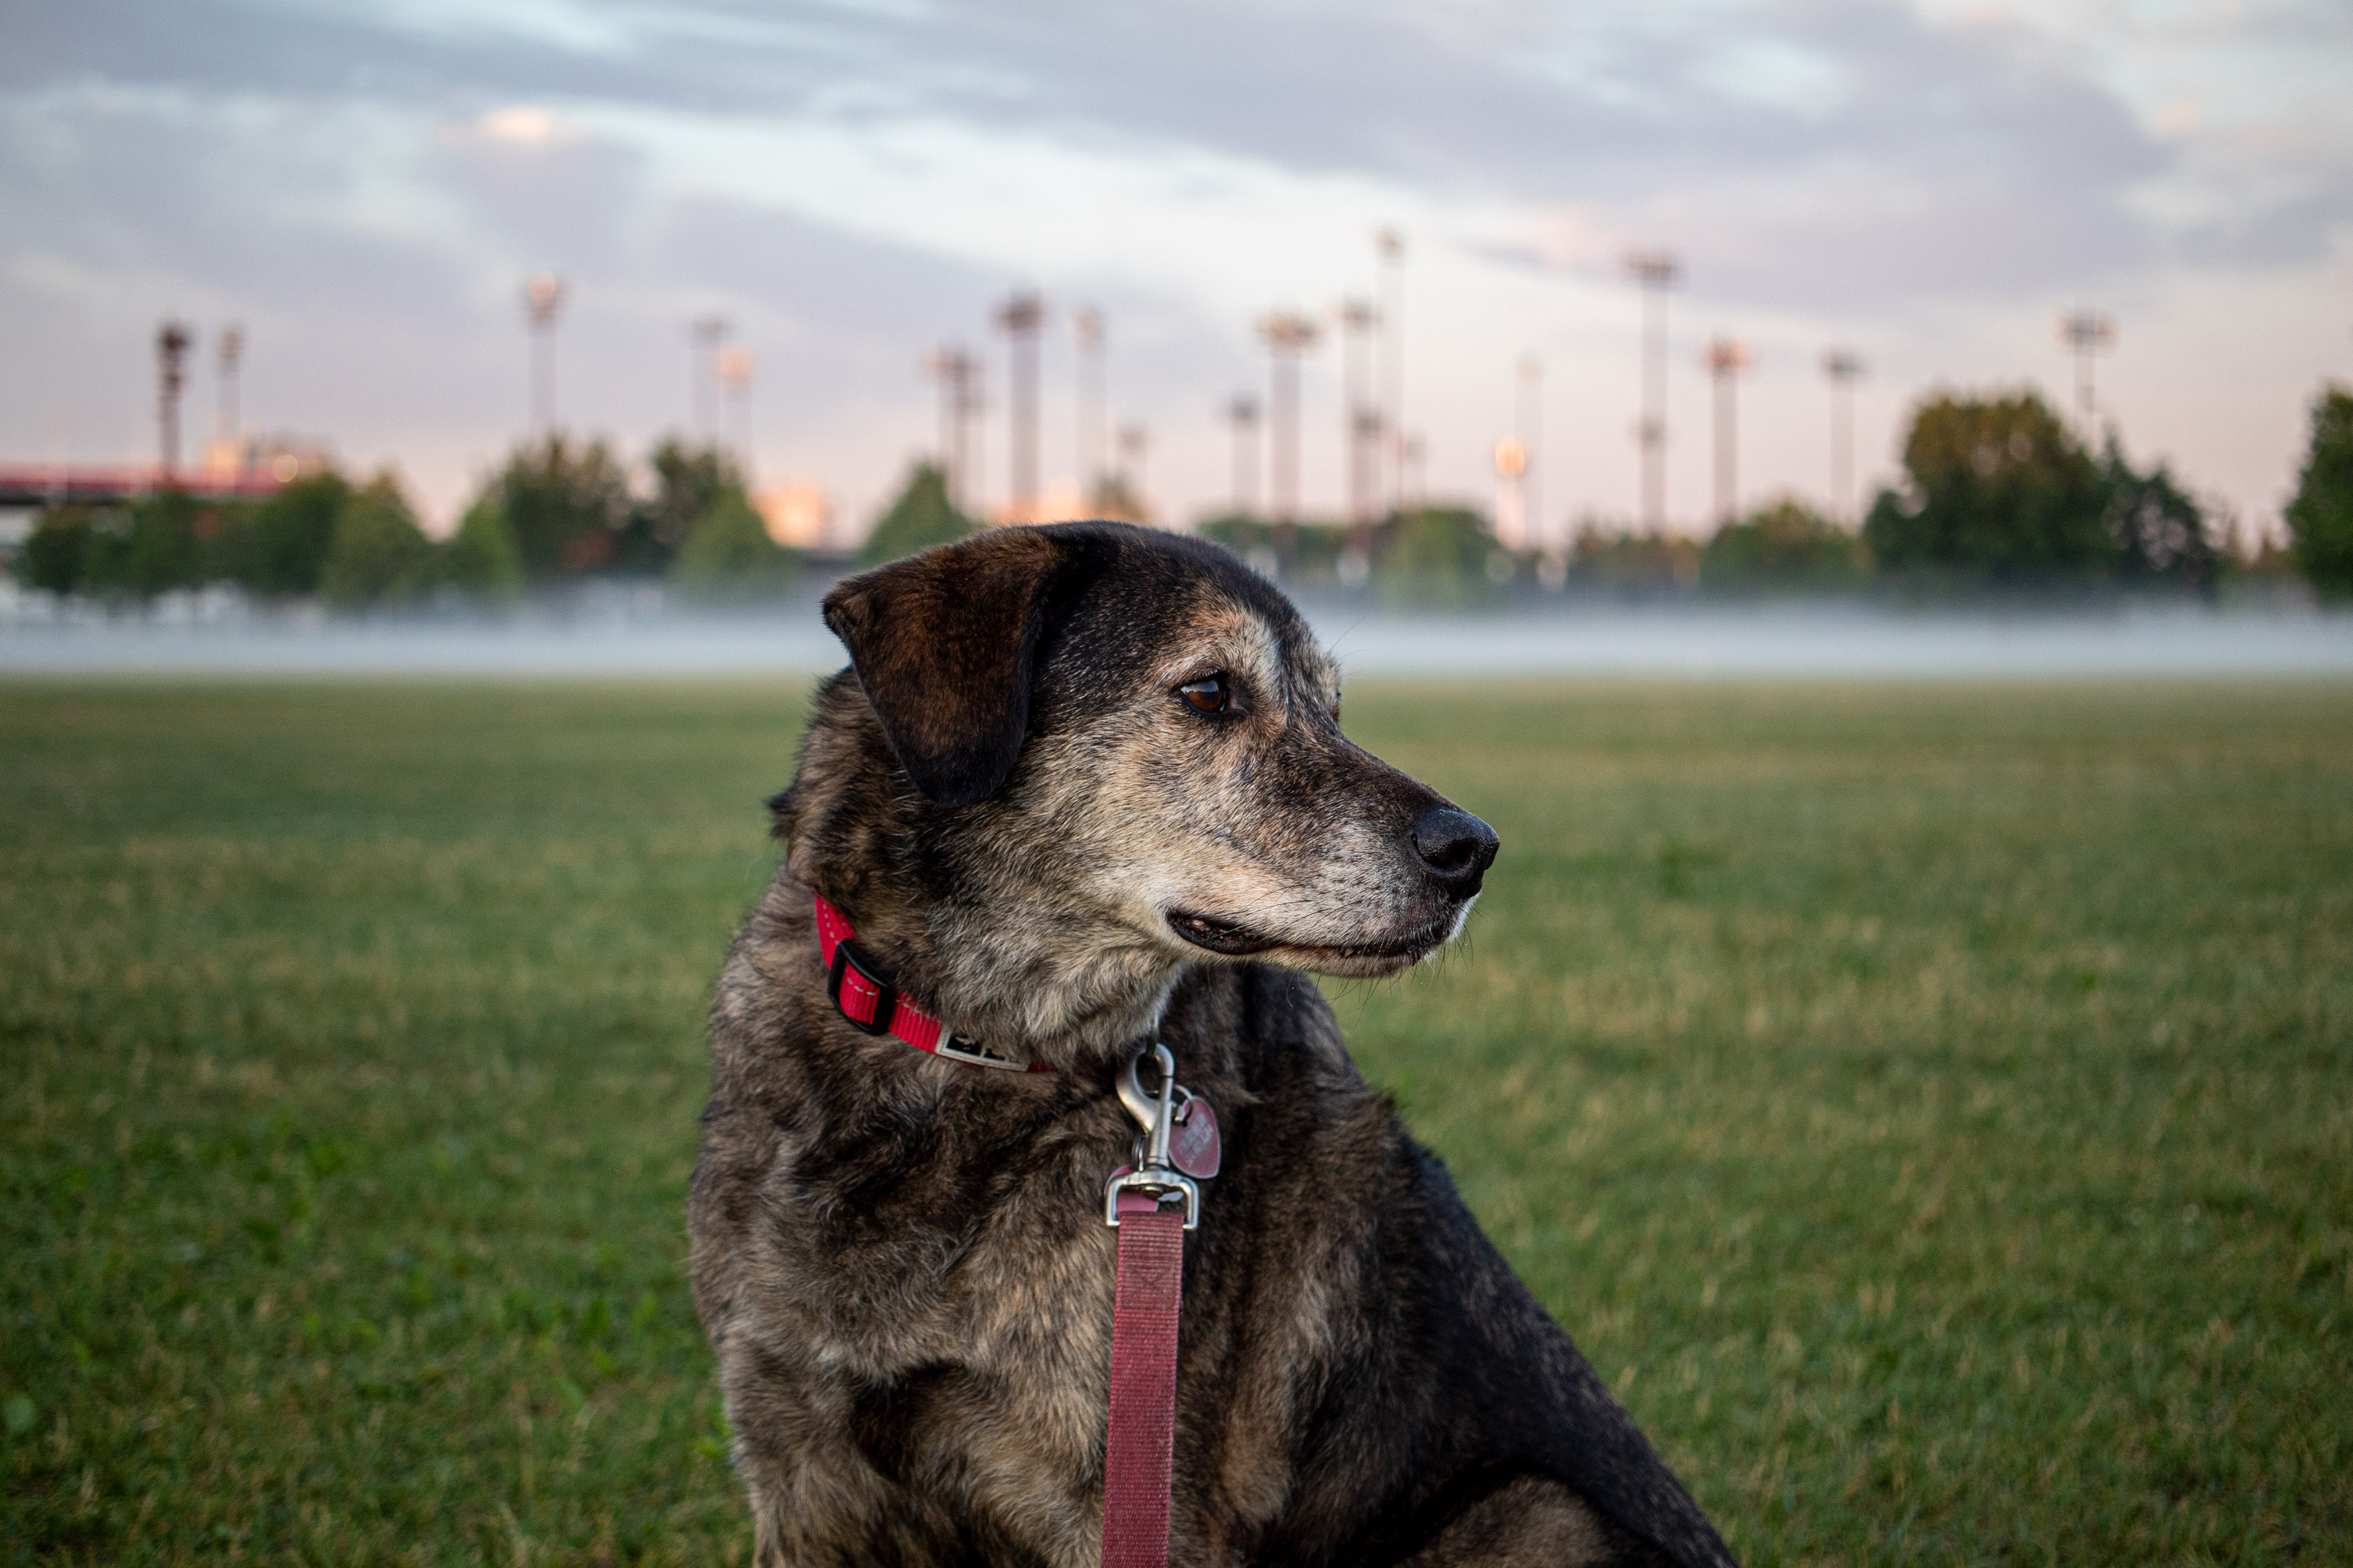 Dog with a red leash and collar in front of a fog-covered field